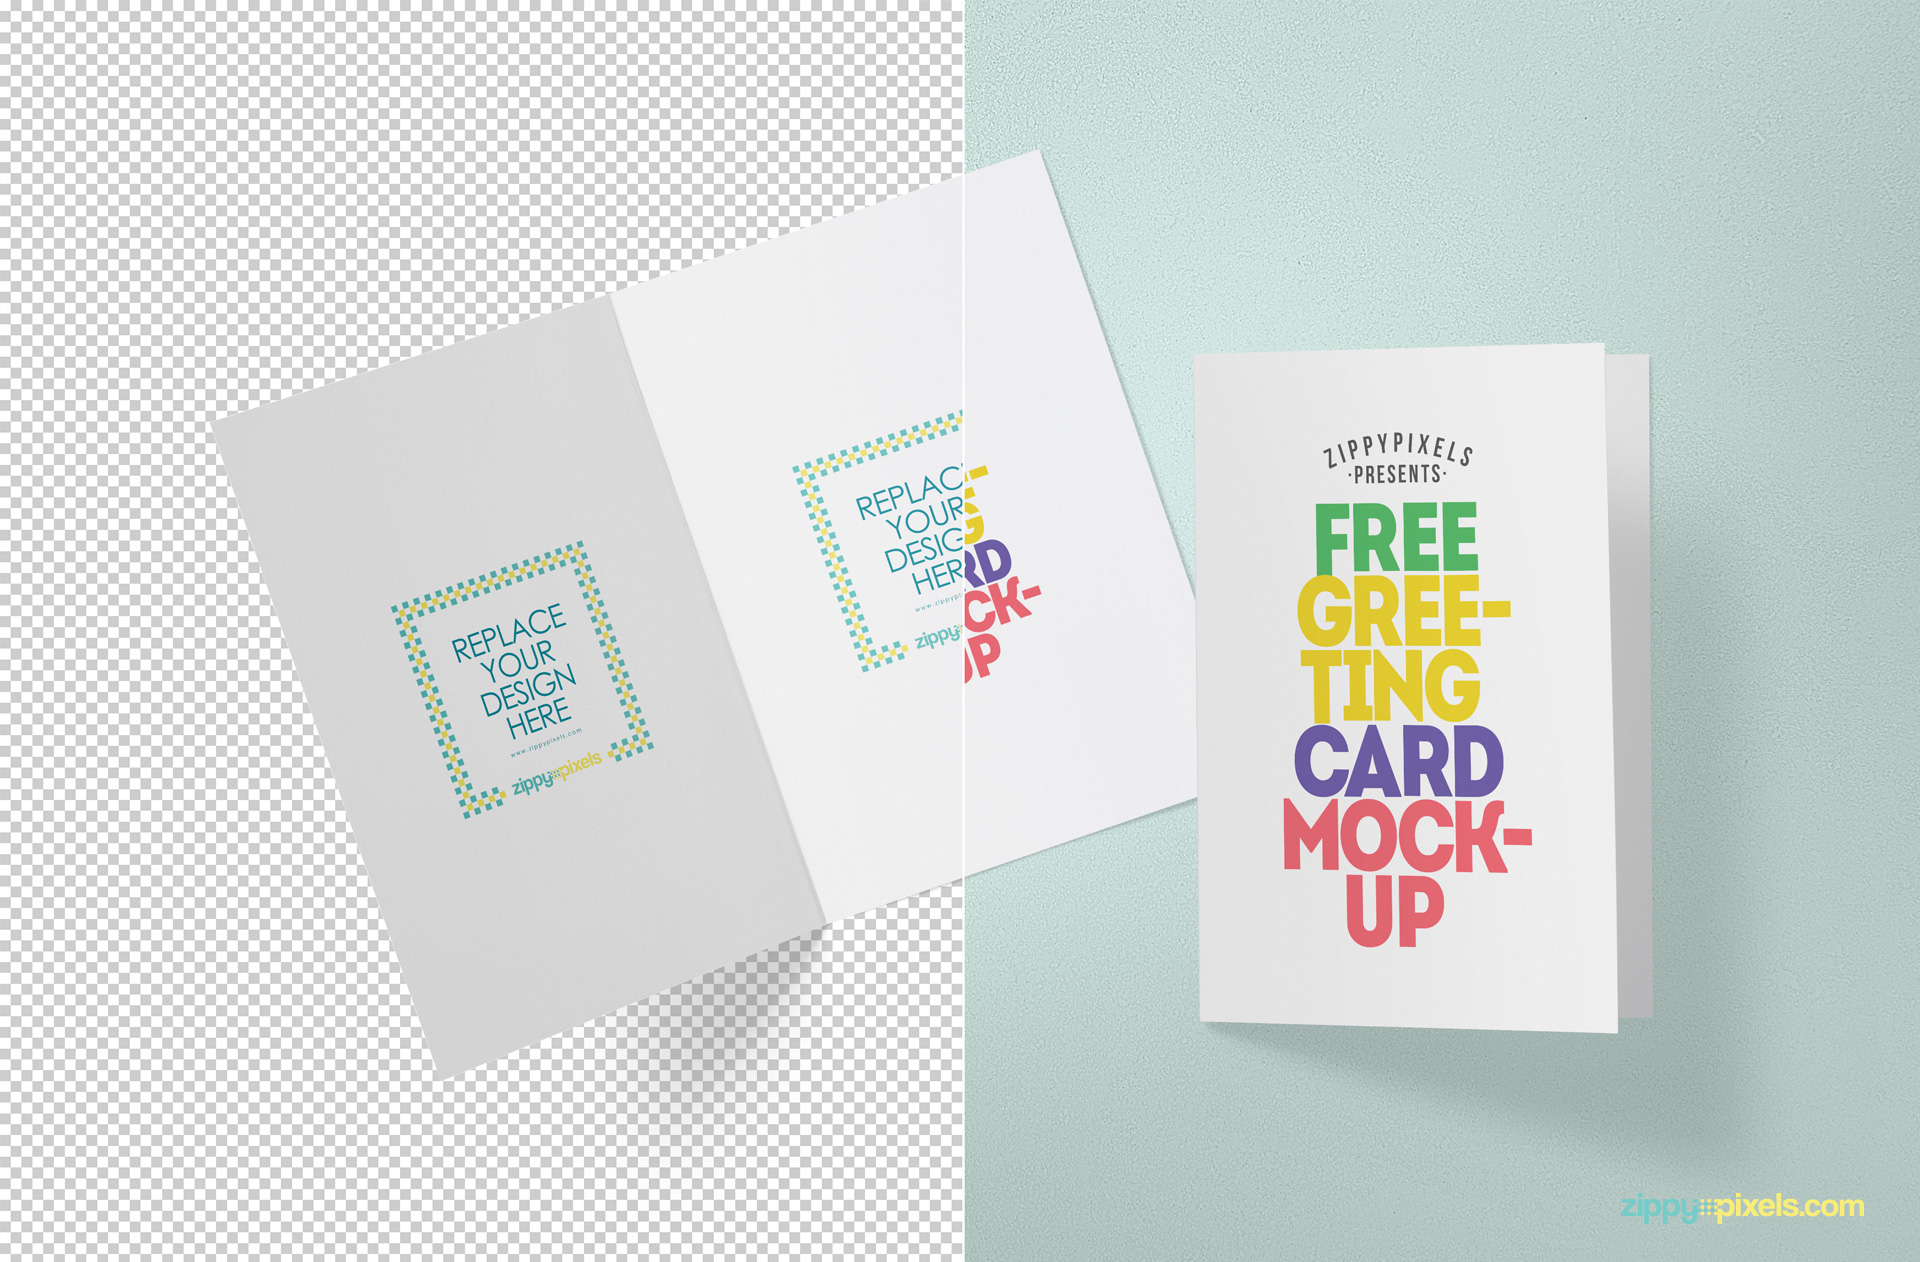 Free greeting card mockup zippypixels